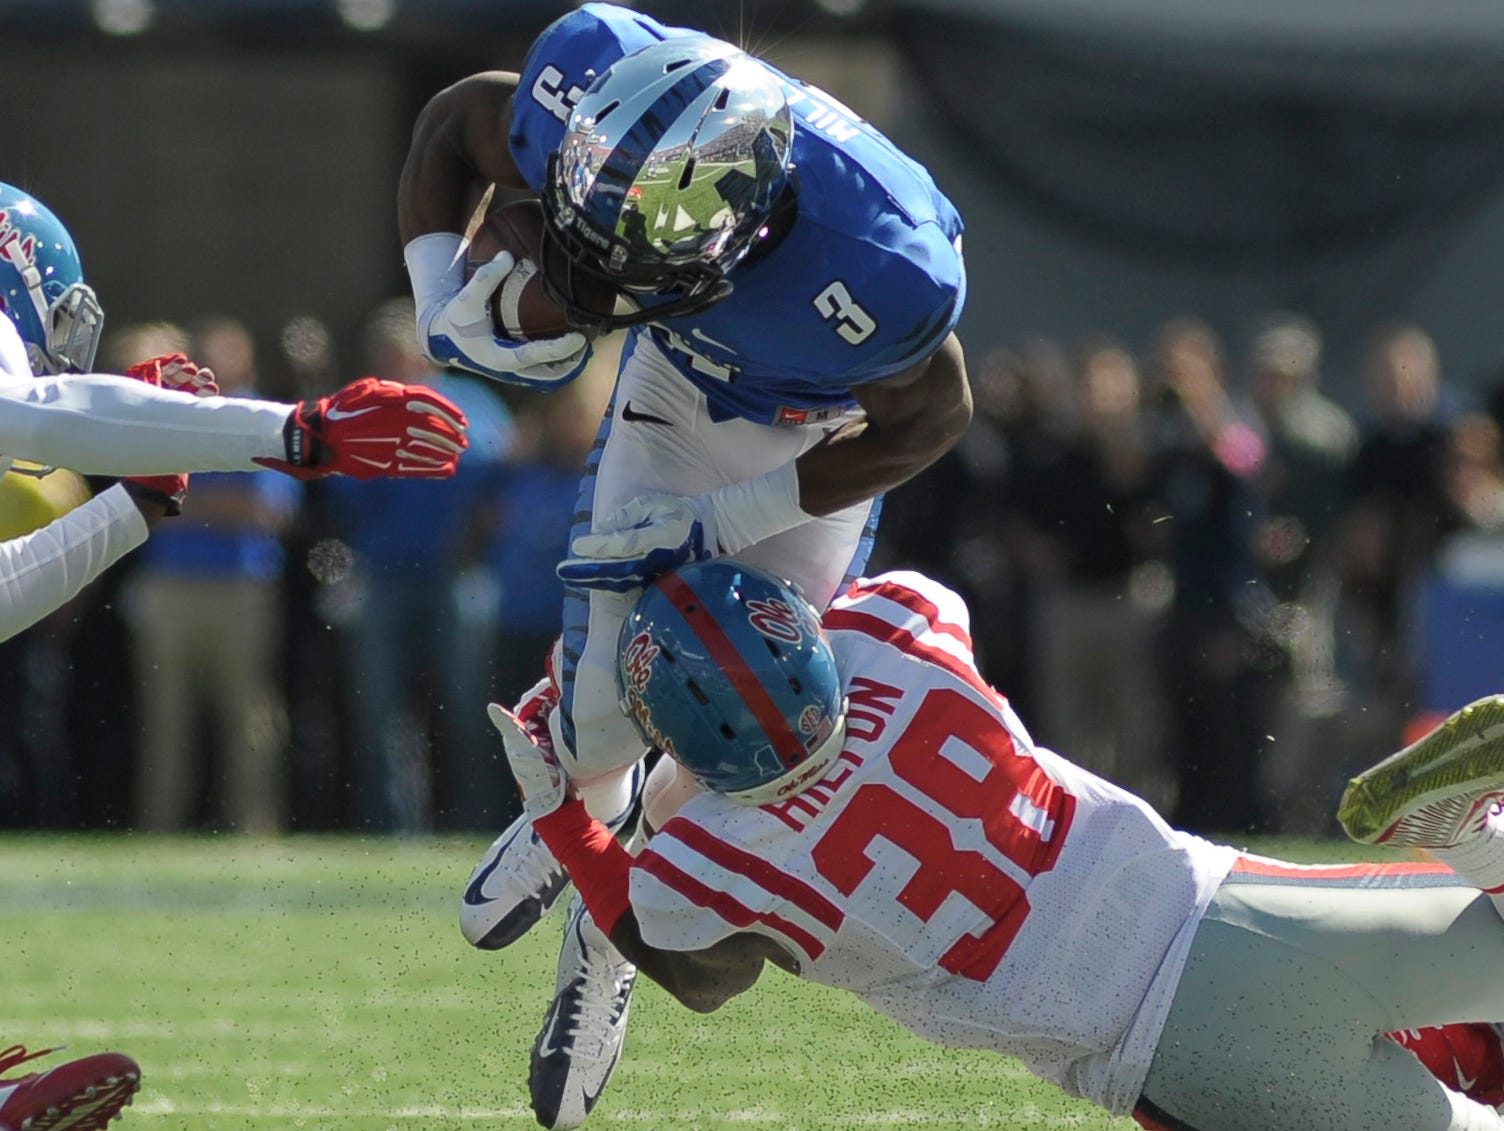 Ole Miss safety Mike Hilton was named a Jim Thorpe Award semifinalist.